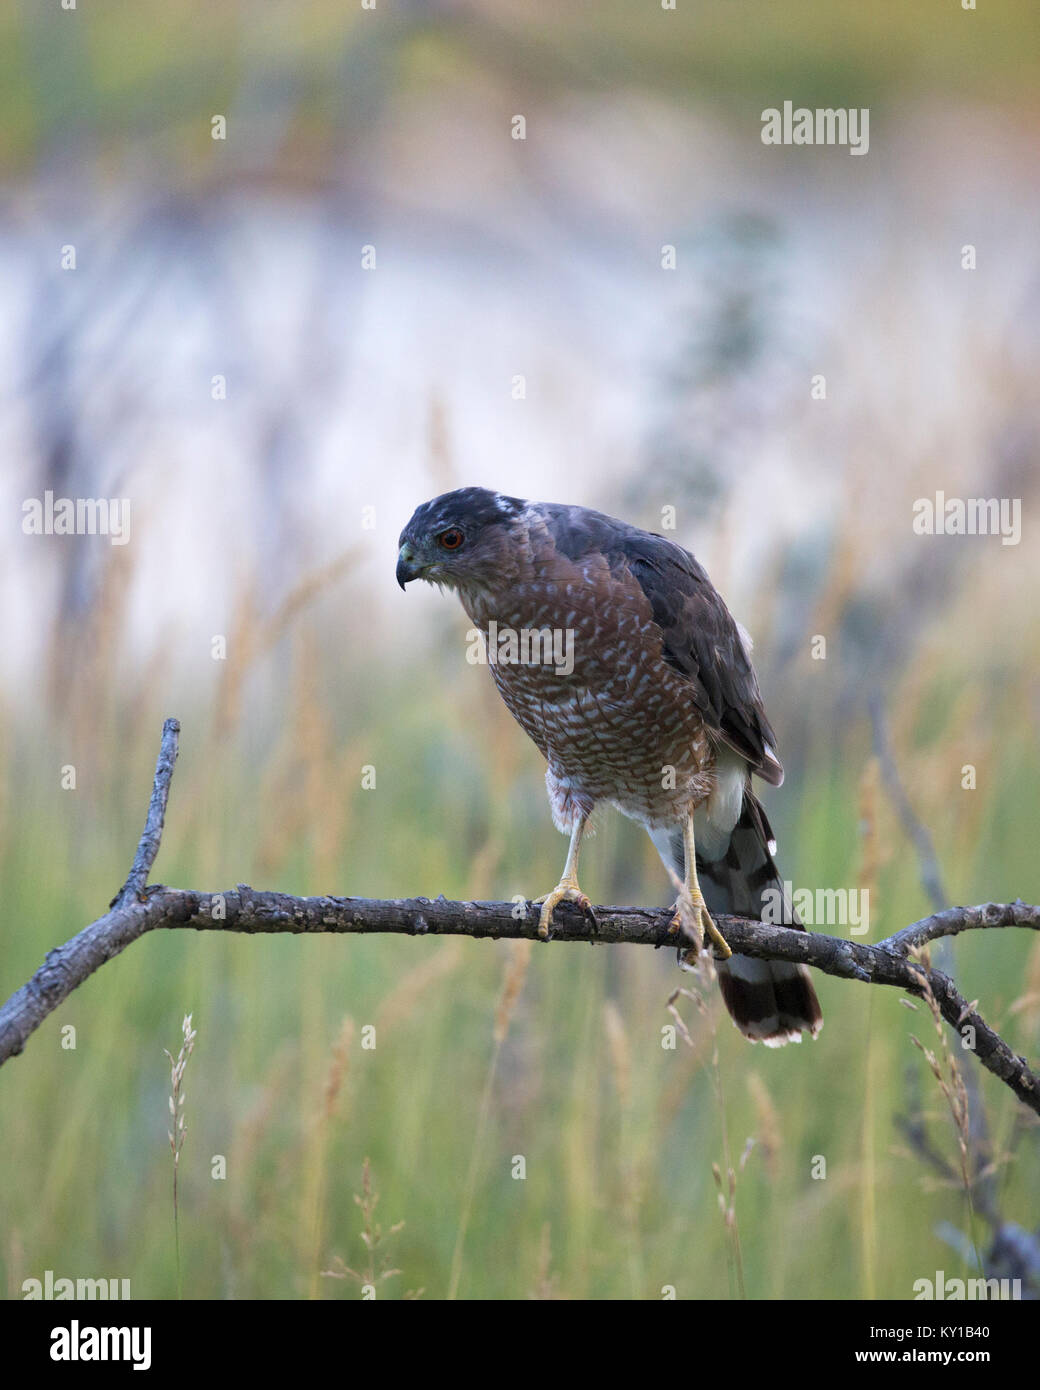 Cooper's Hawk (Accipiter cooperii) hunting from perch on branch - Stock Image